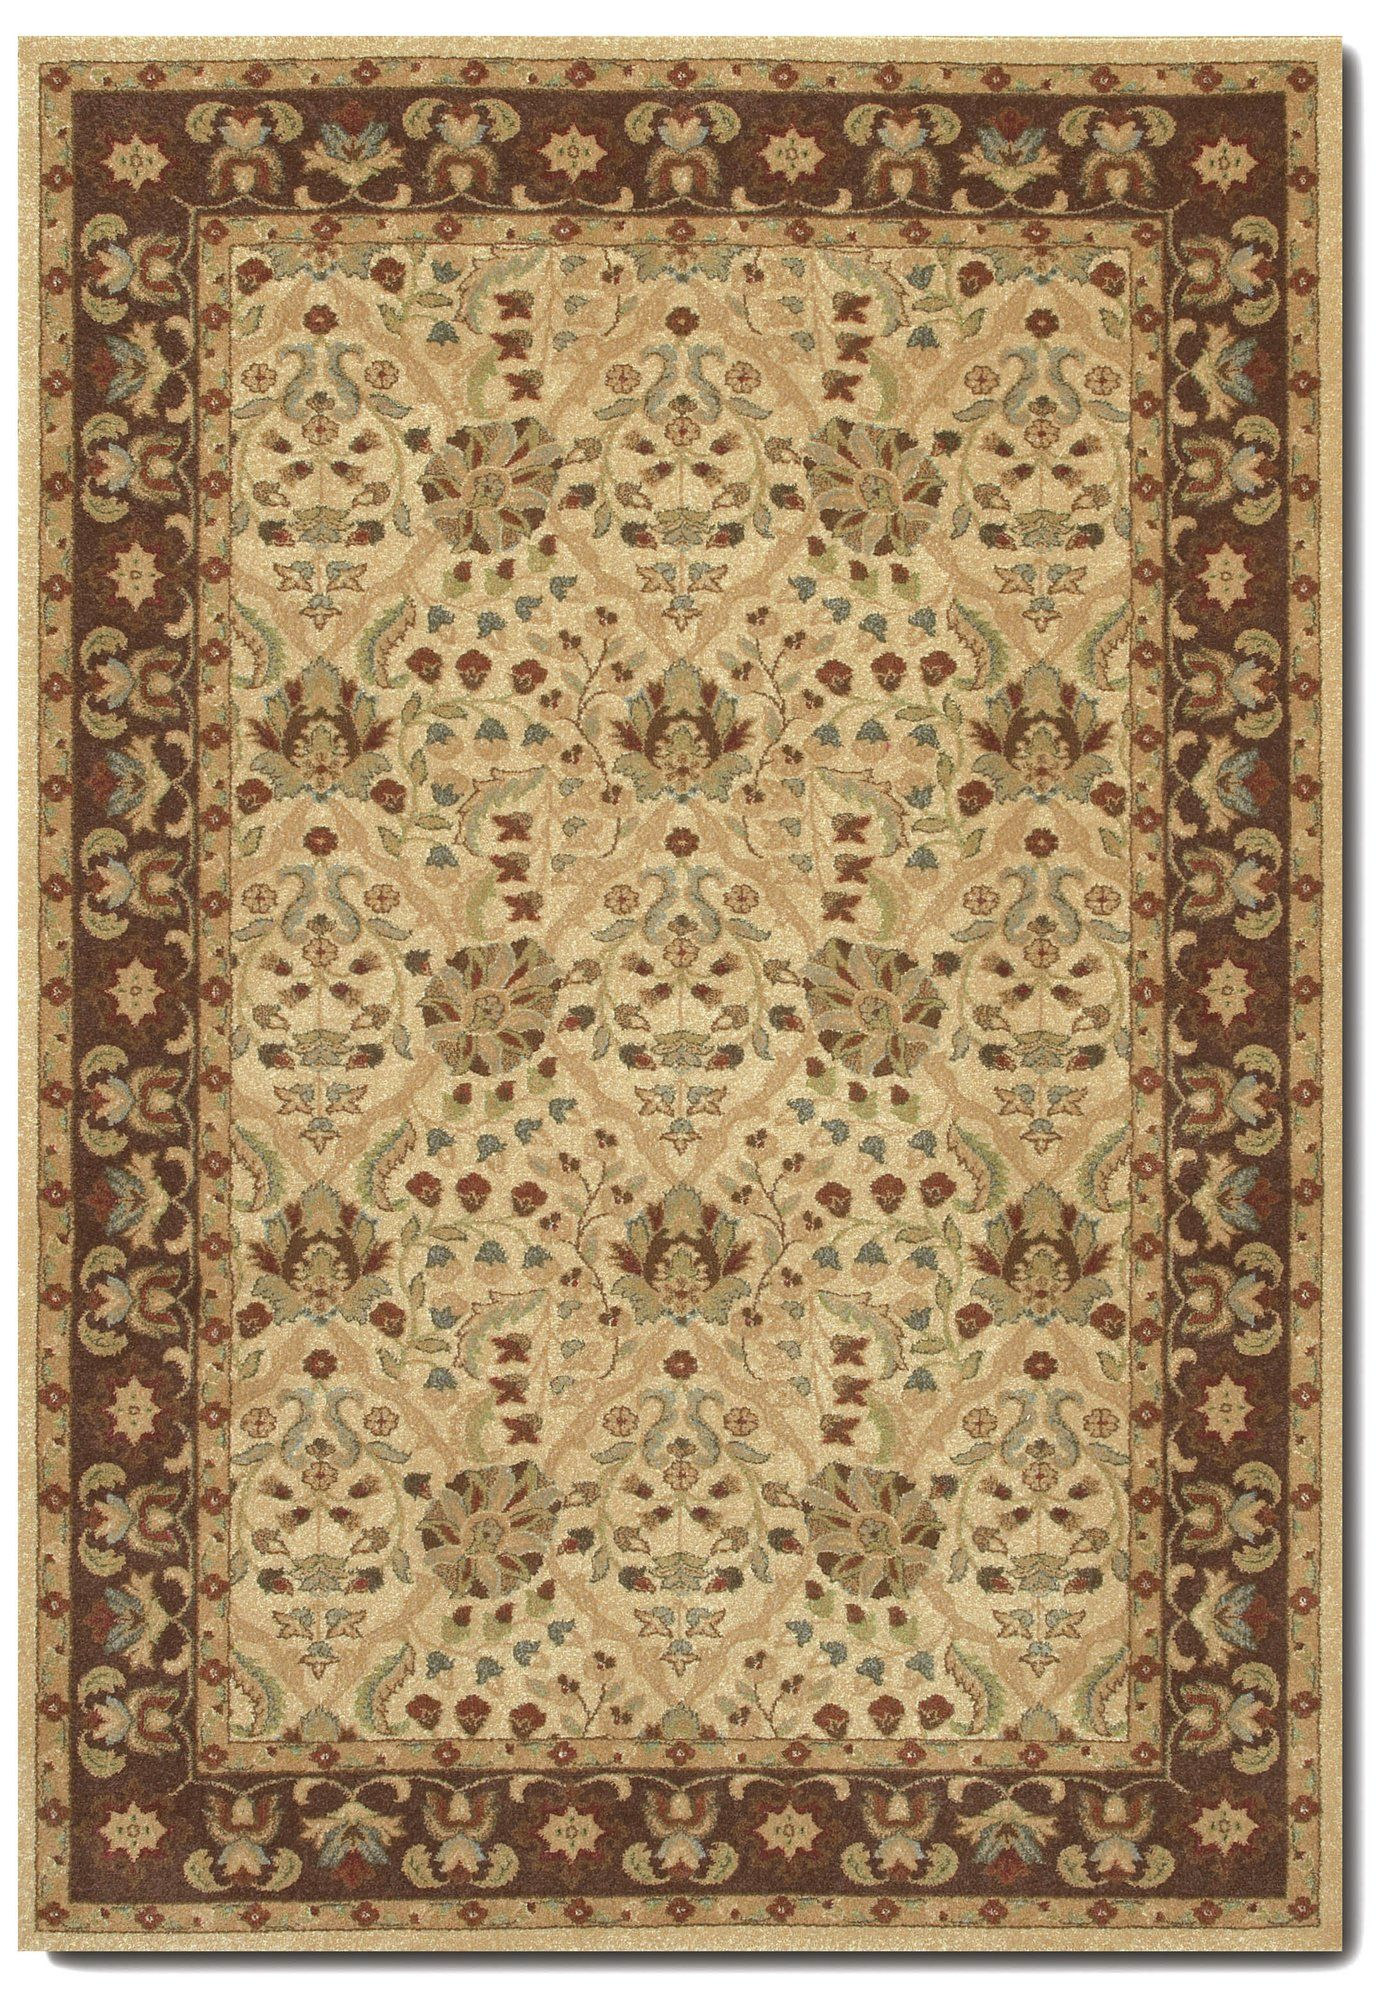 Harding Latte Chocolate Area Rug Area Rugs For Sale Synthetic